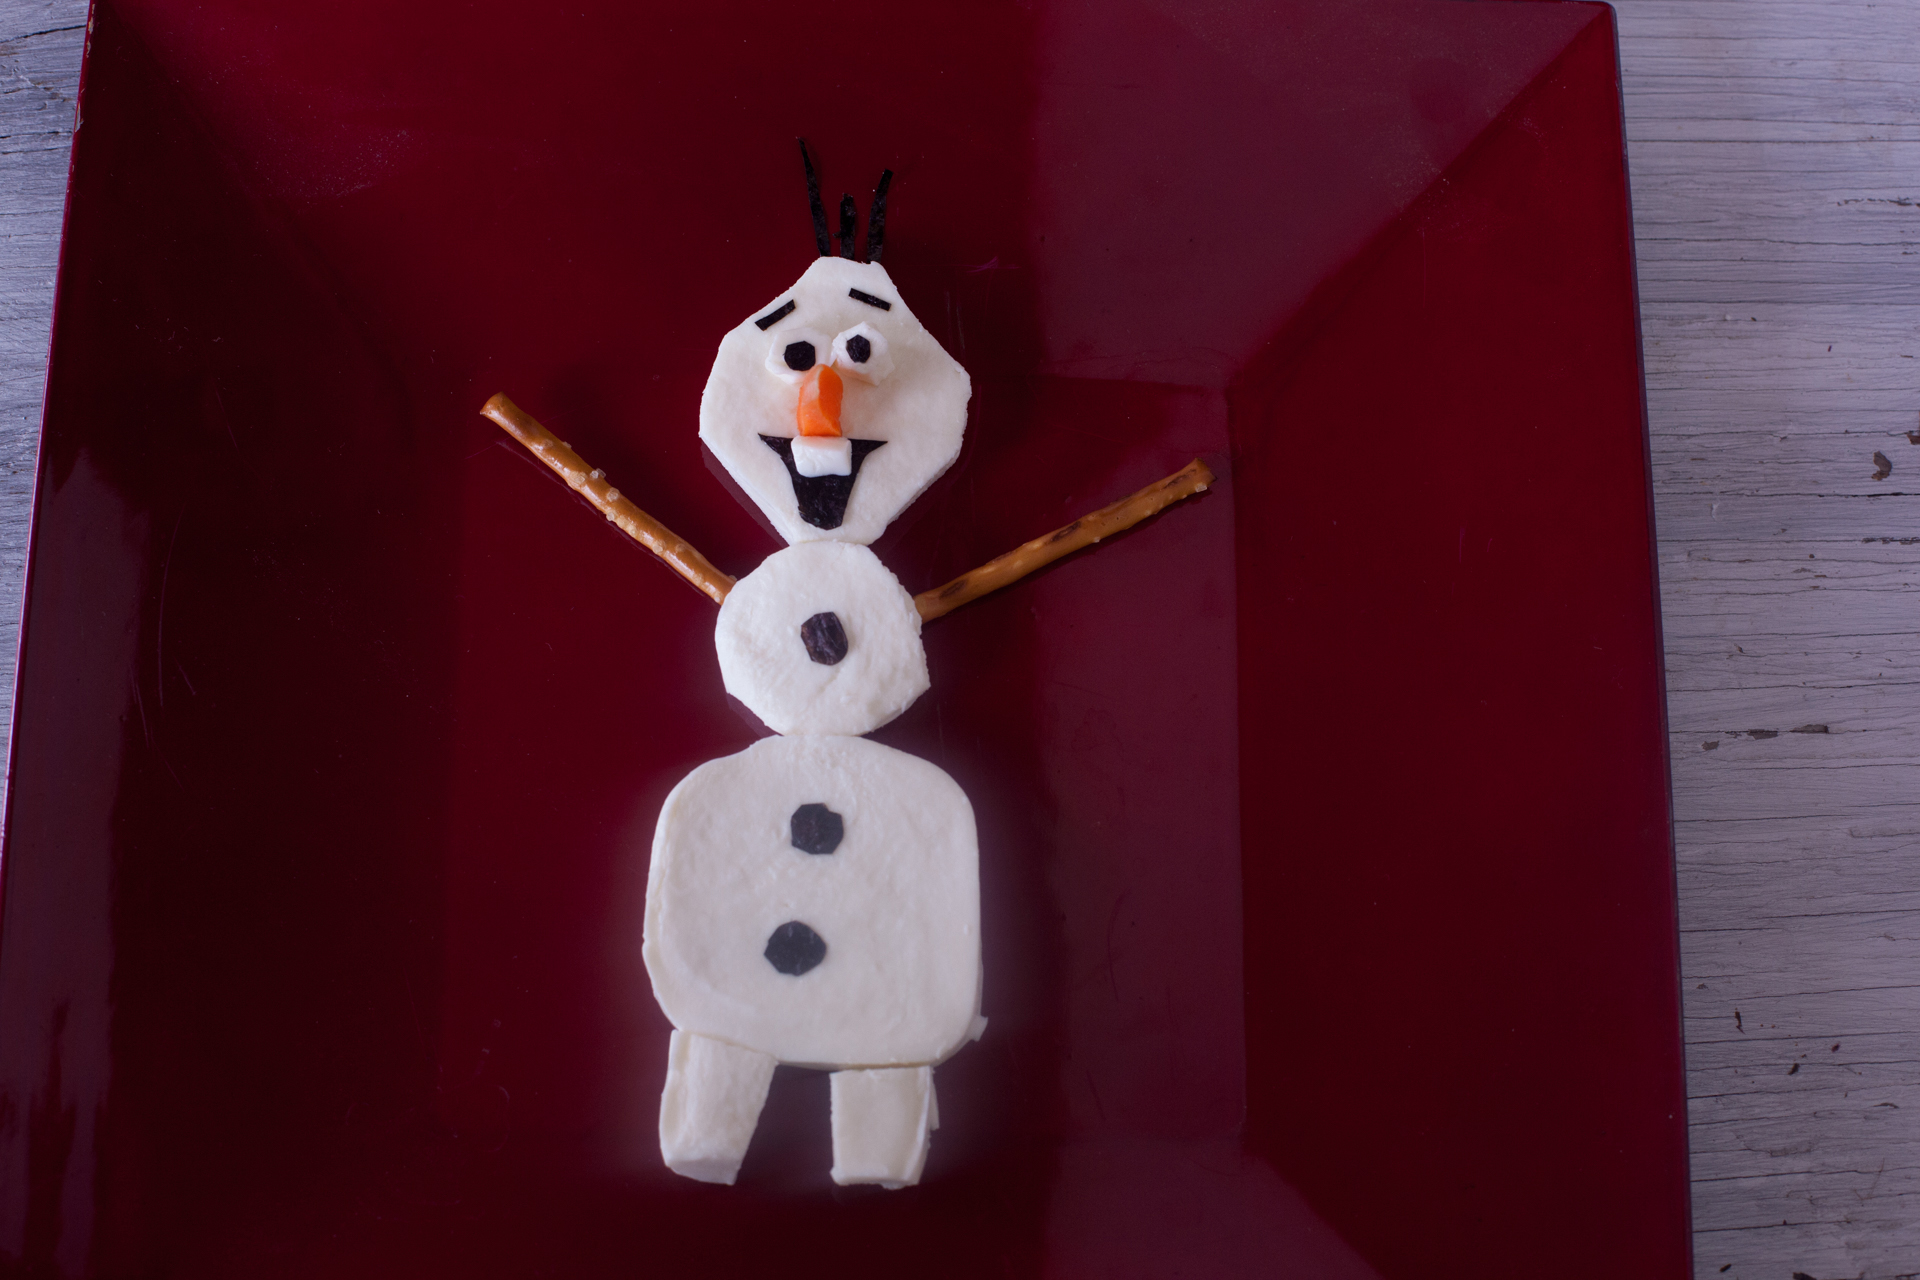 Frozen's Olaf Snowman Cheese Snack for Kids